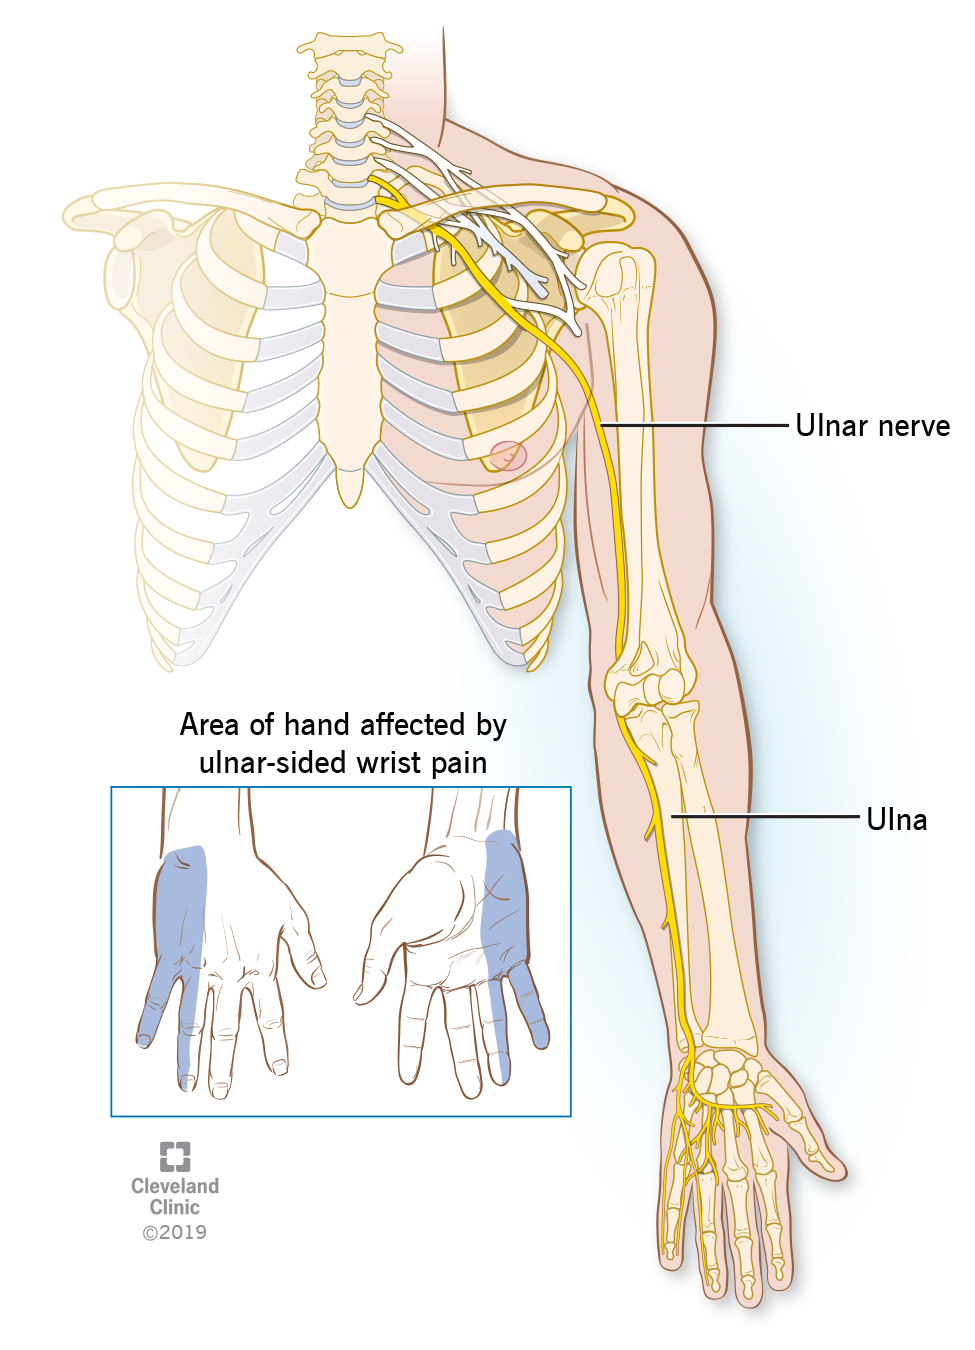 Position of ulnar nerve in a human runs from the neck, down arm, to pinkie finger. Inset picture shows front and back side of hand affected by ulnar-sided wrist pain.